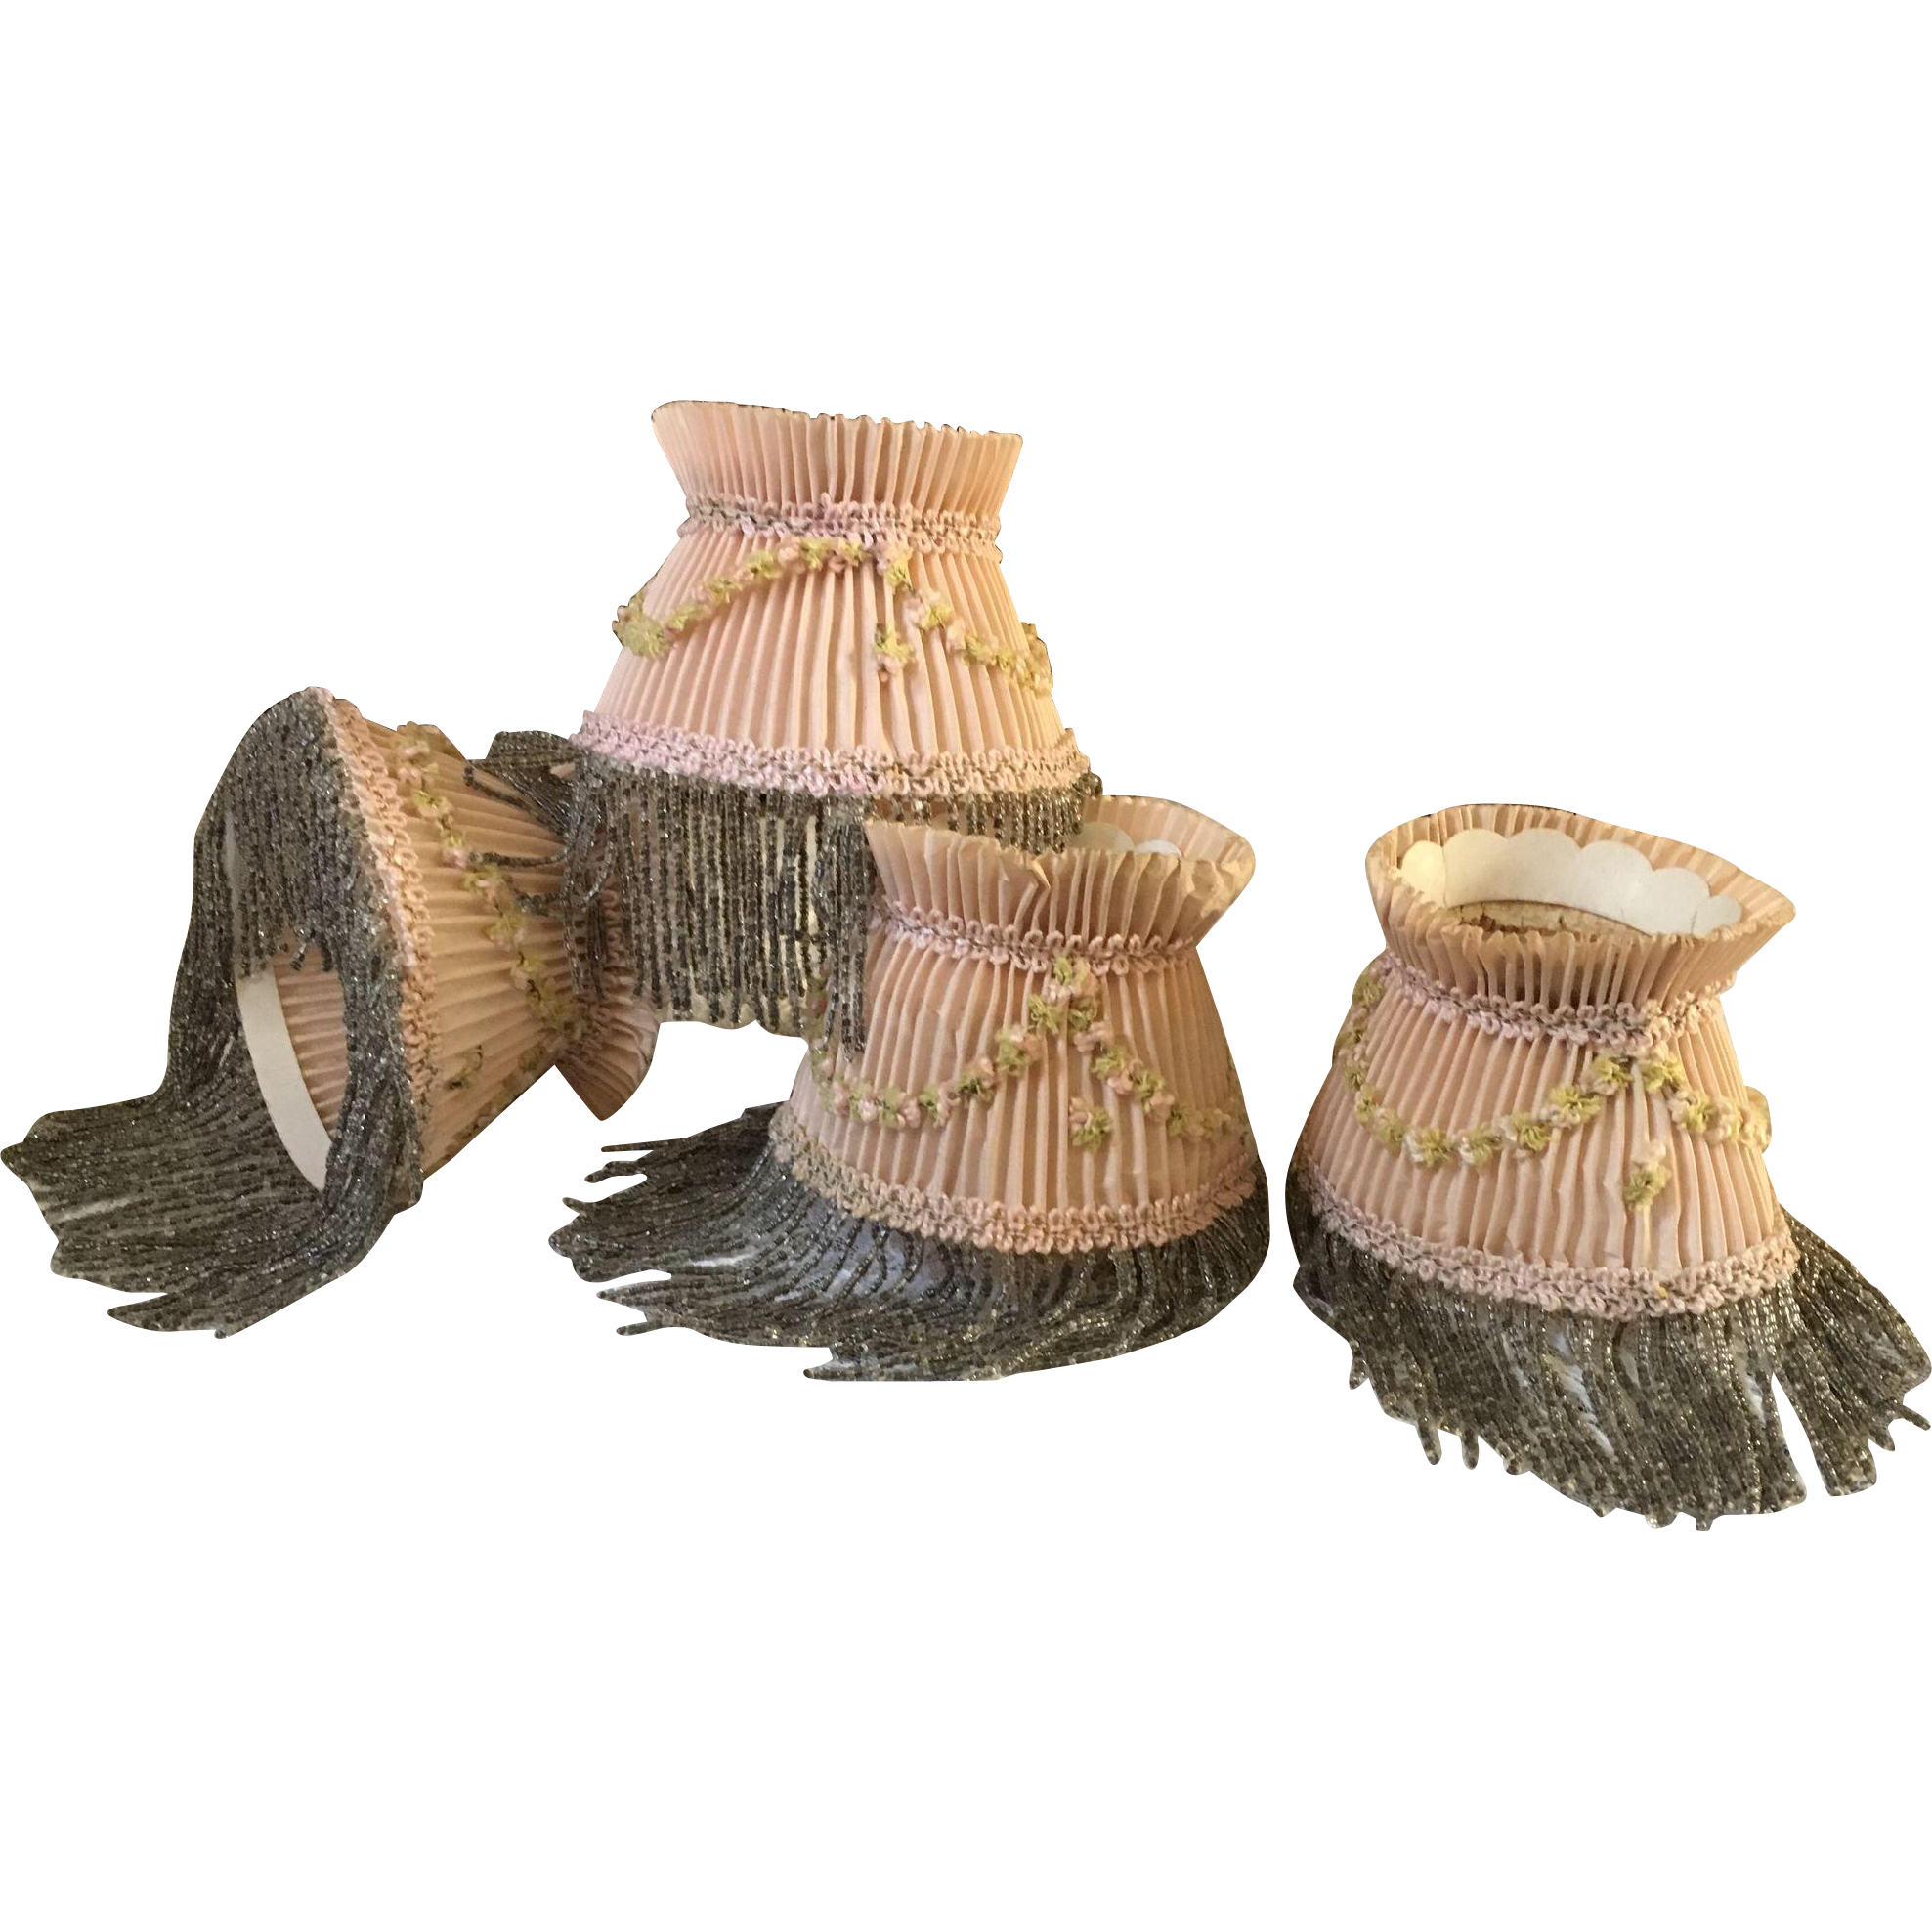 Boudoir Candle Lampshades - Four in Pink with Beaded Fringe - Circa 1920's